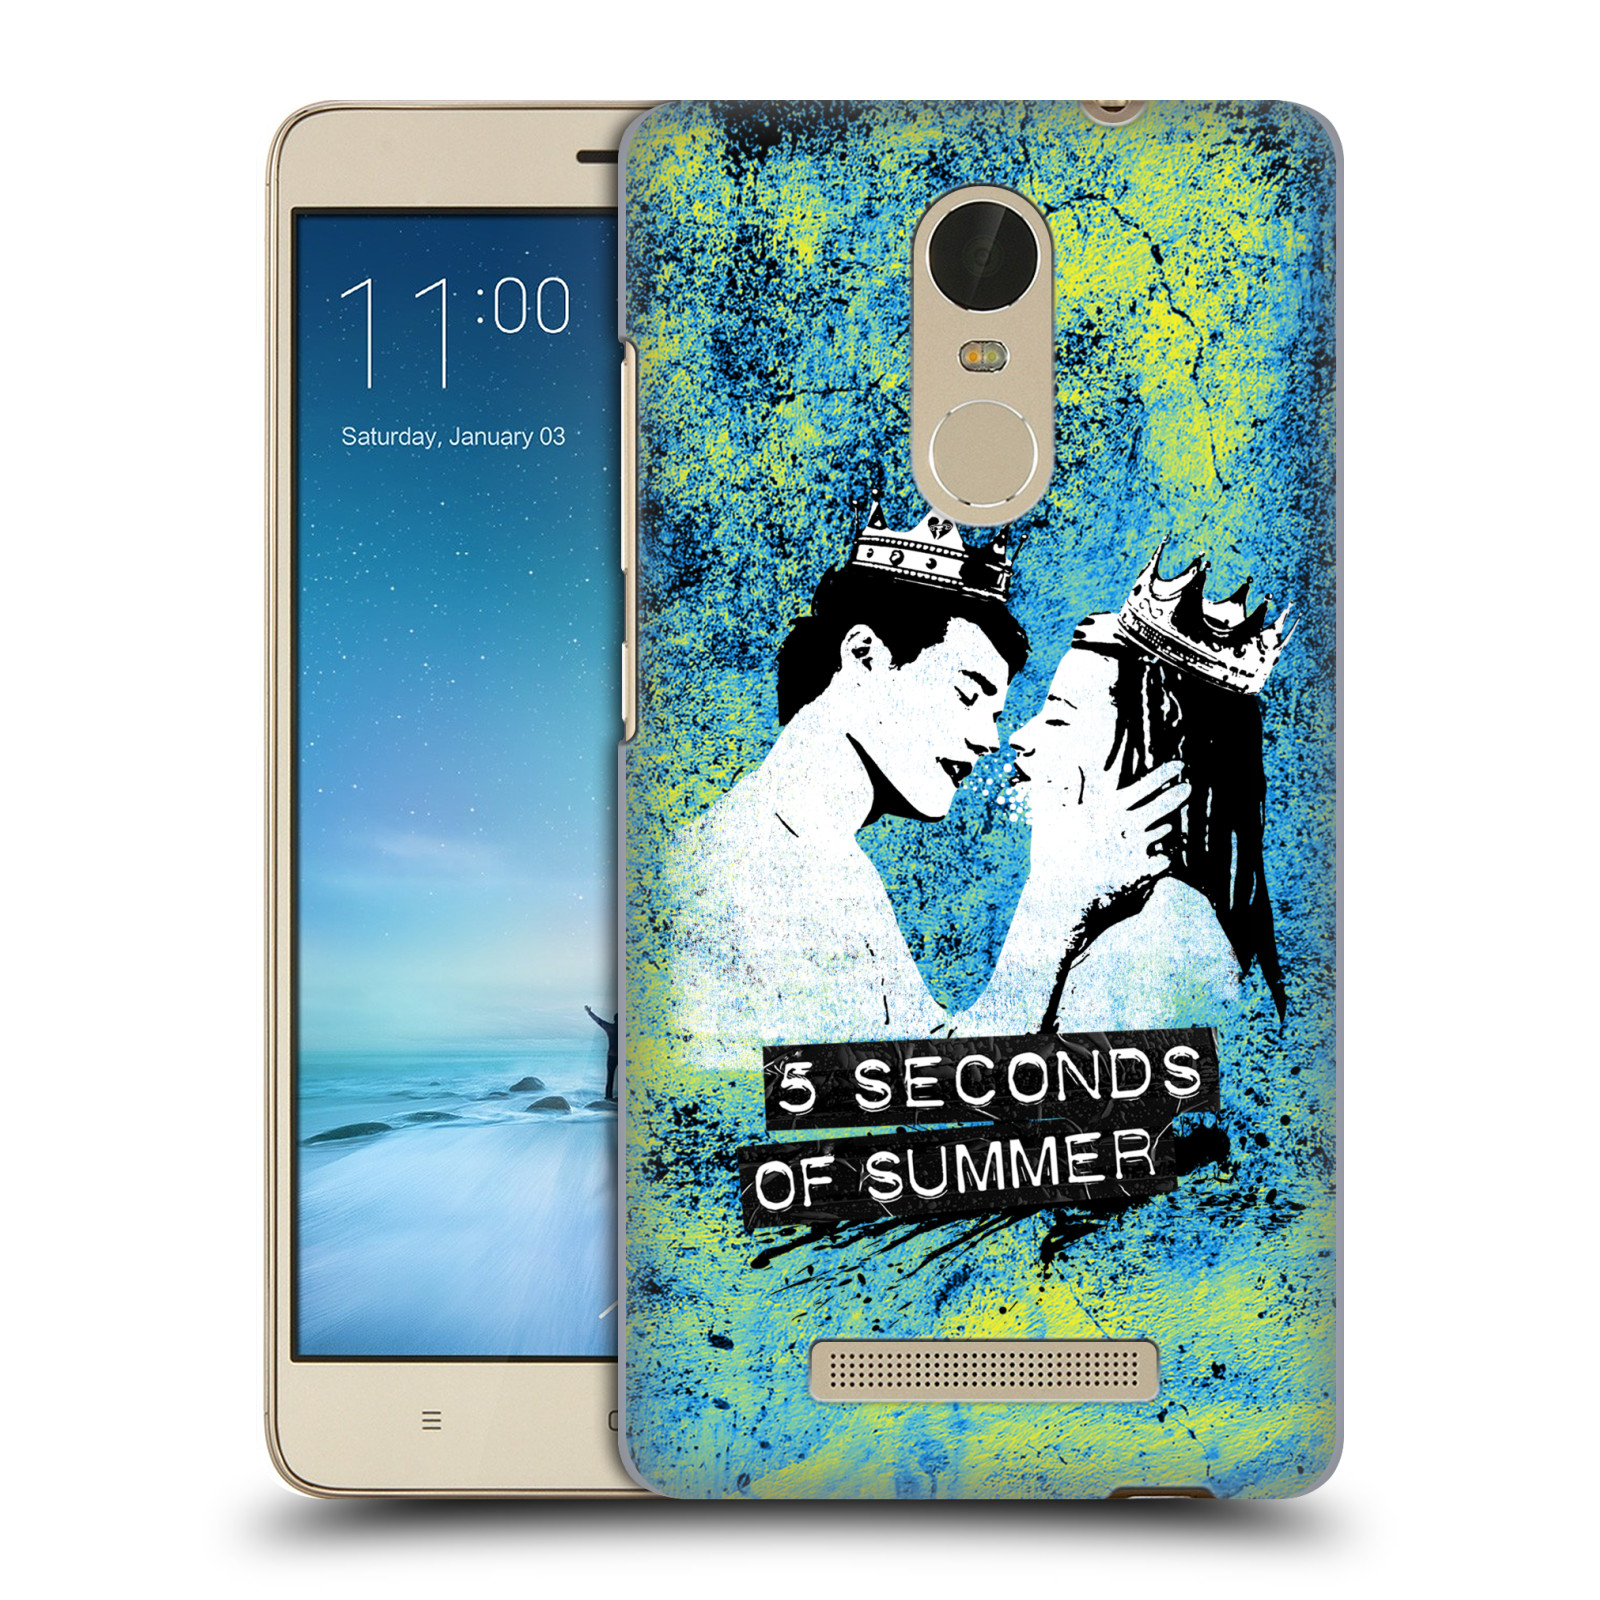 OFFICIAL-5-SECONDS-OF-SUMMER-COLOUR-CHAOS-HARD-BACK-CASE-FOR-XIAOMI-PHONES